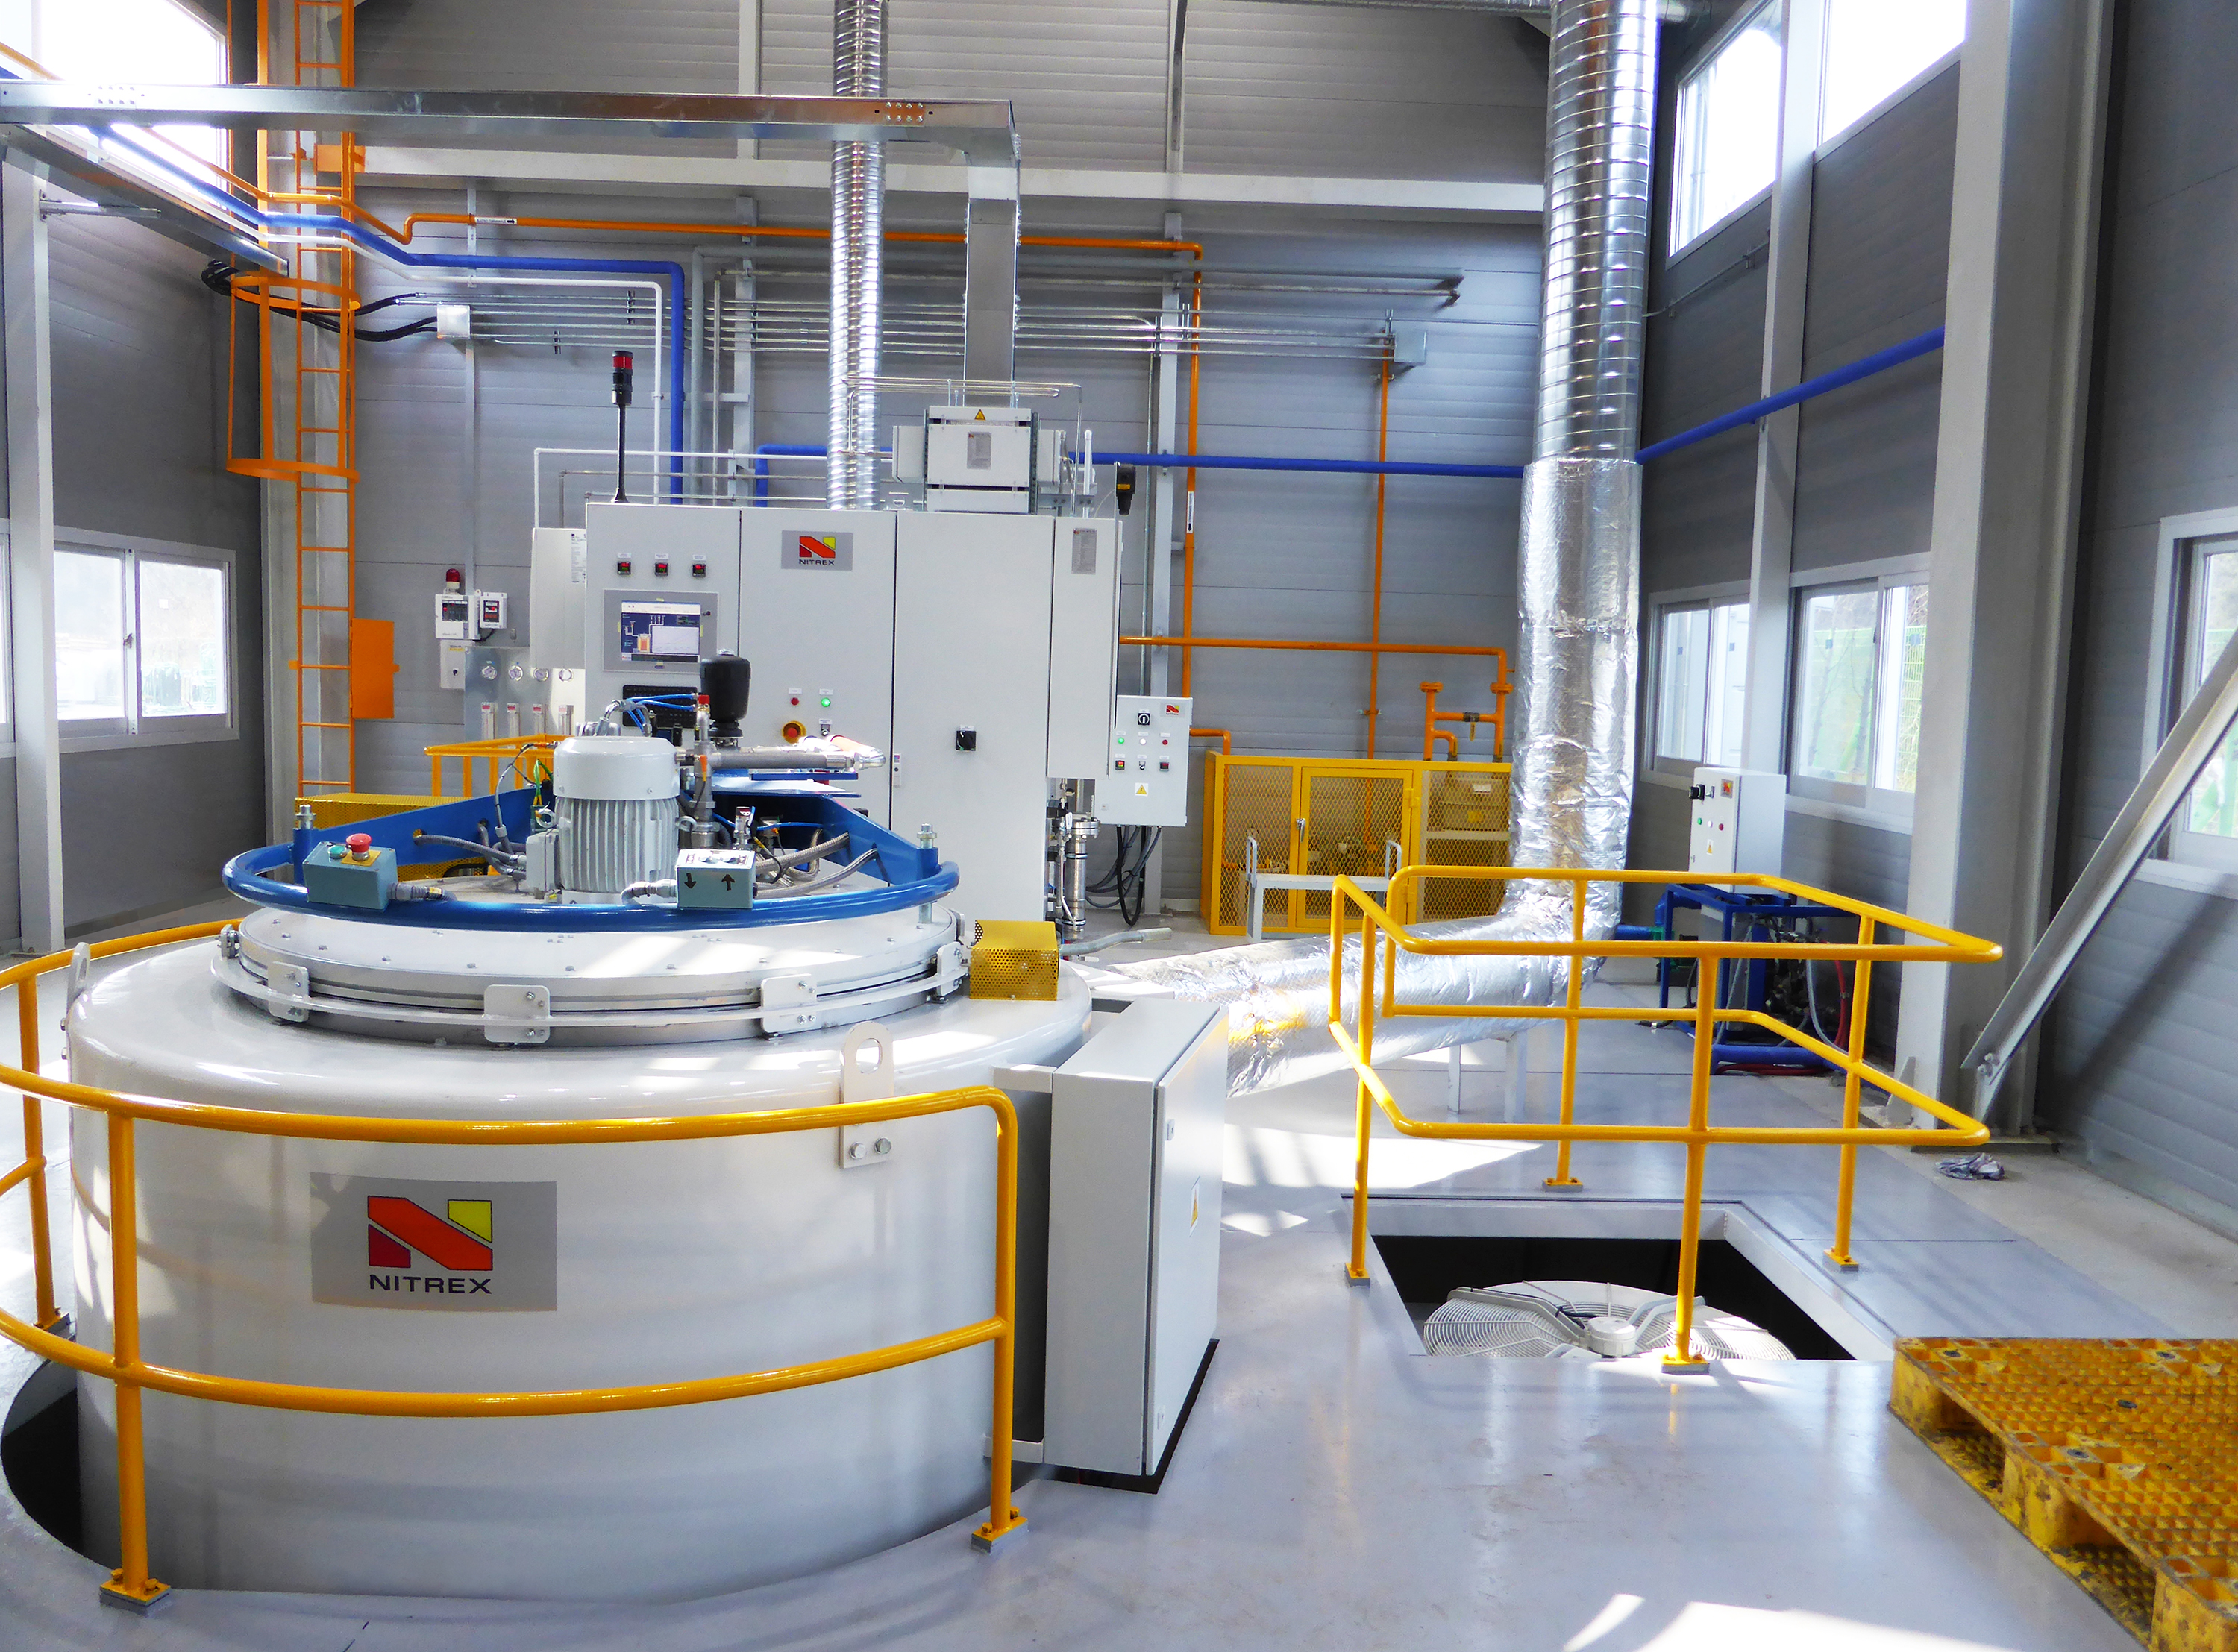 Korean Auto Parts Manufacturer Brings Nitriding In-House